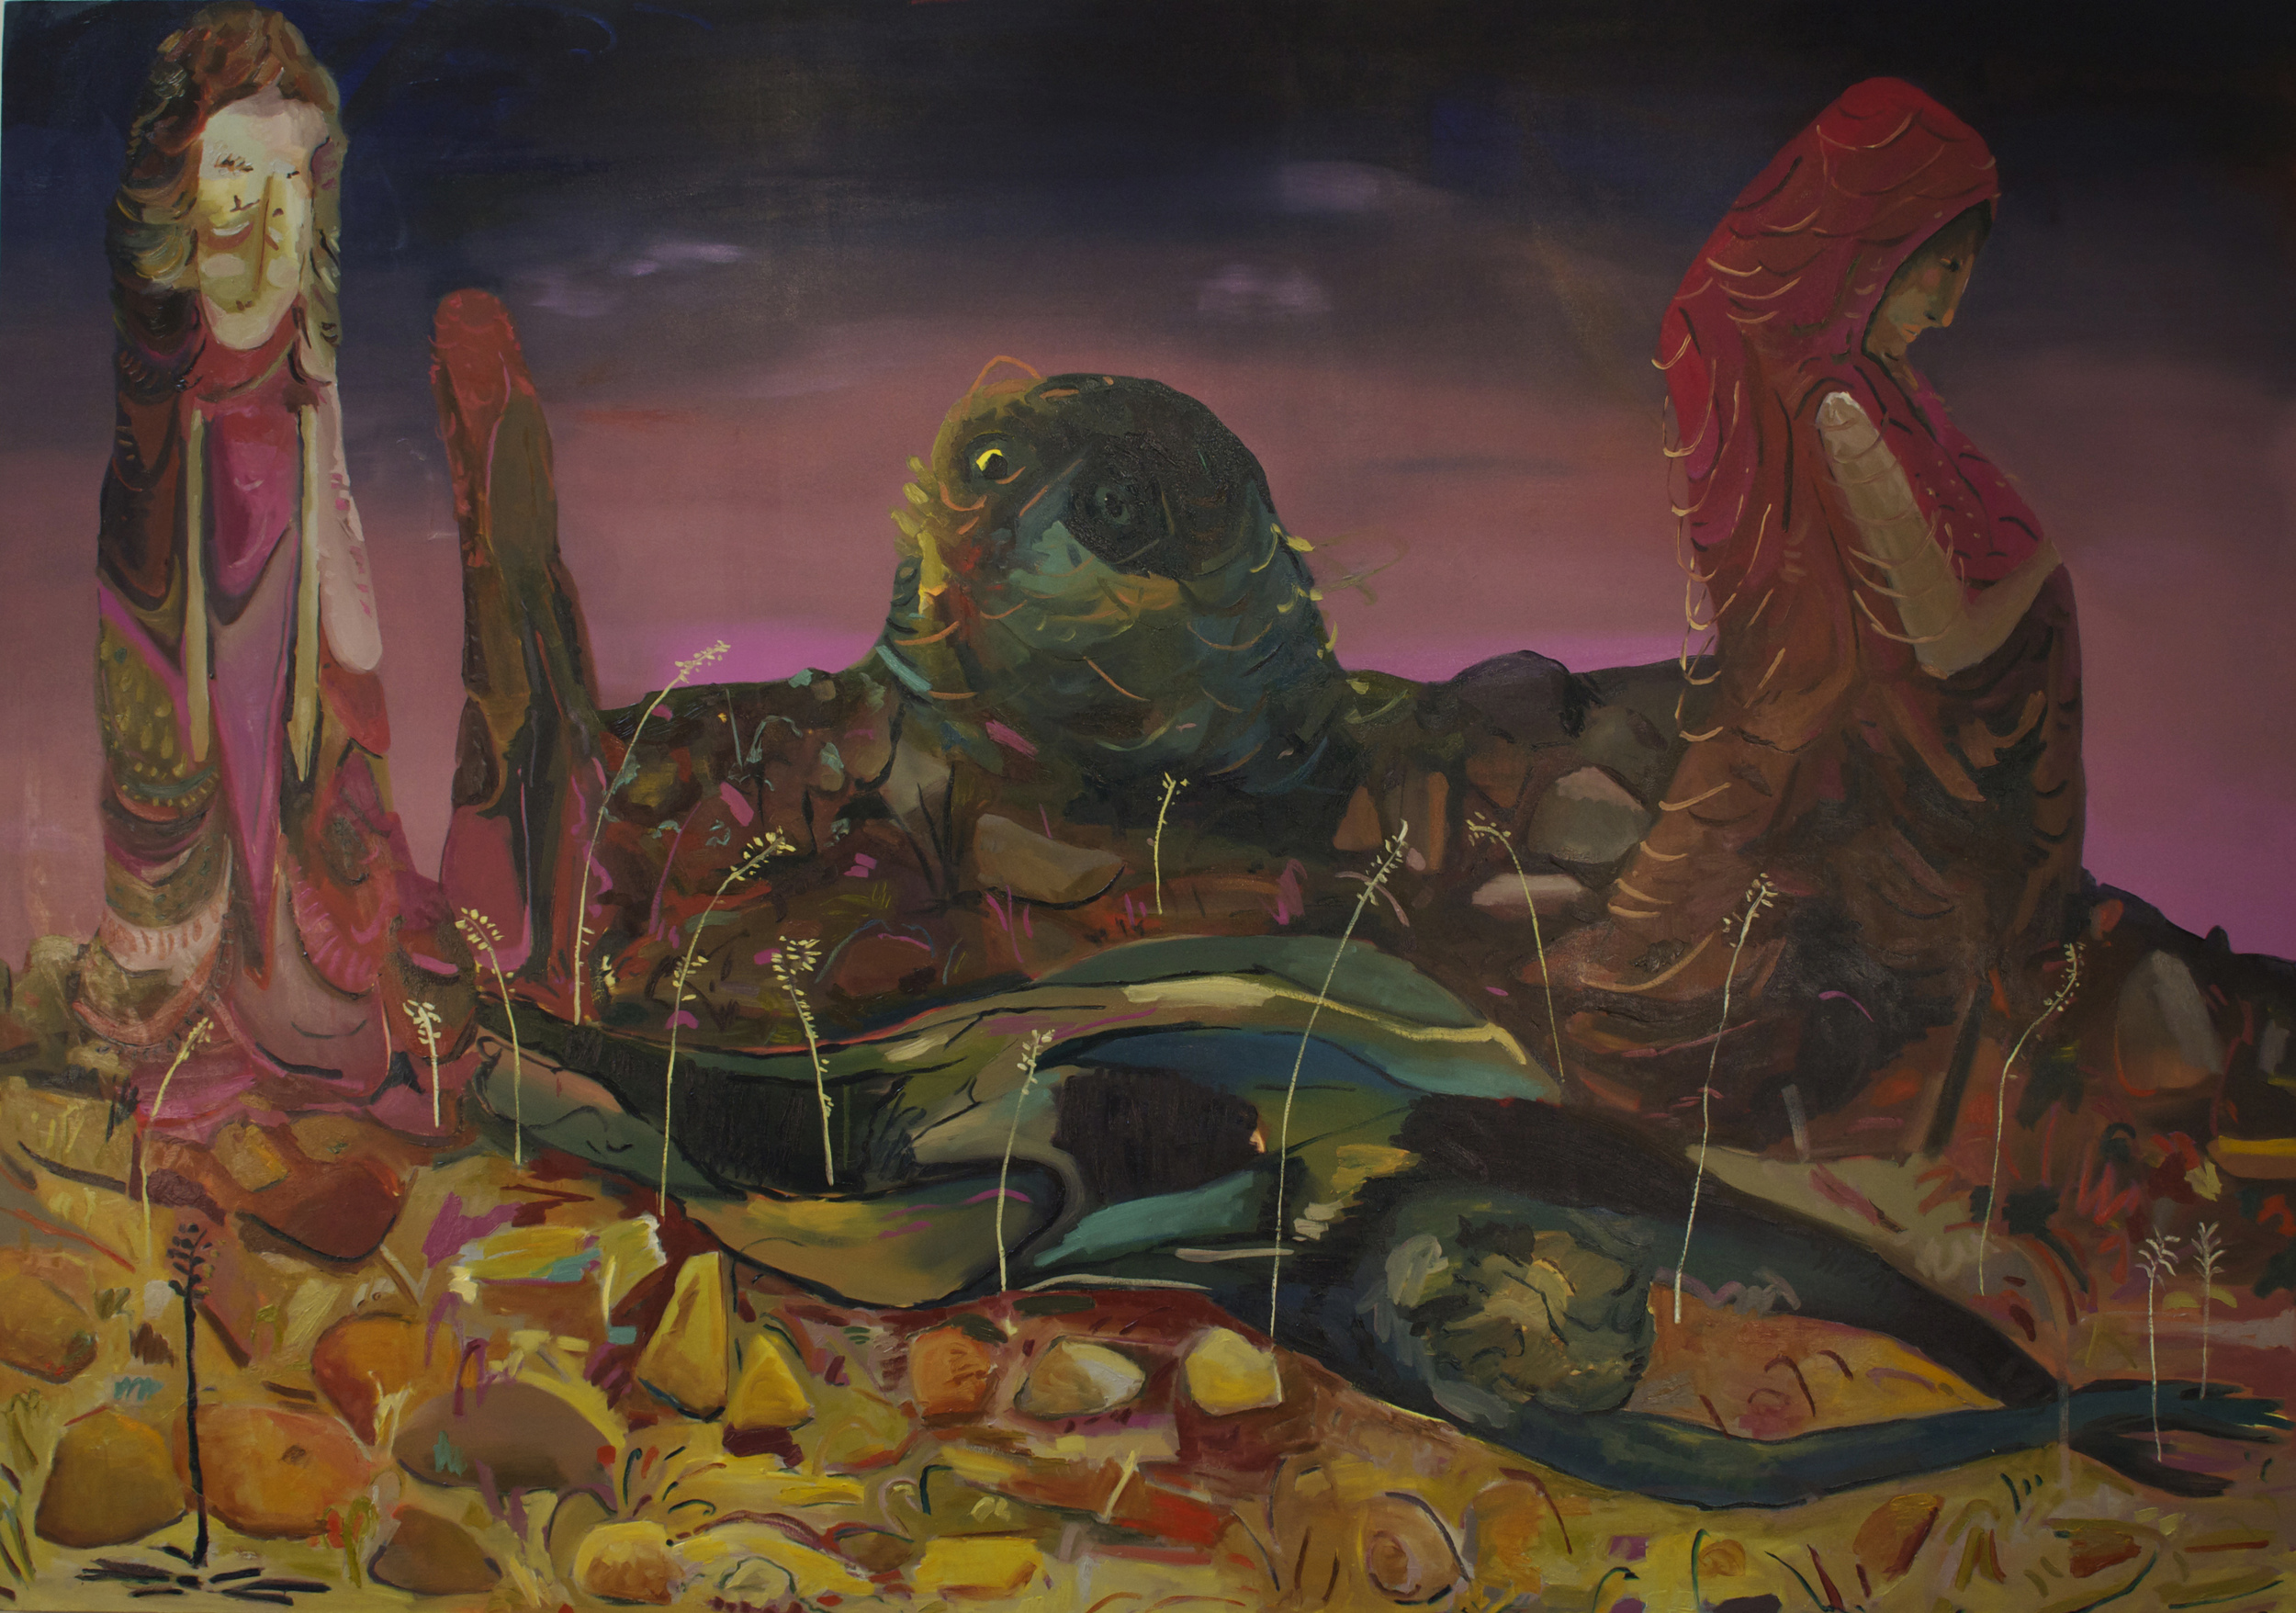 Giant Rock, oil on canvas, 120x84 inches.